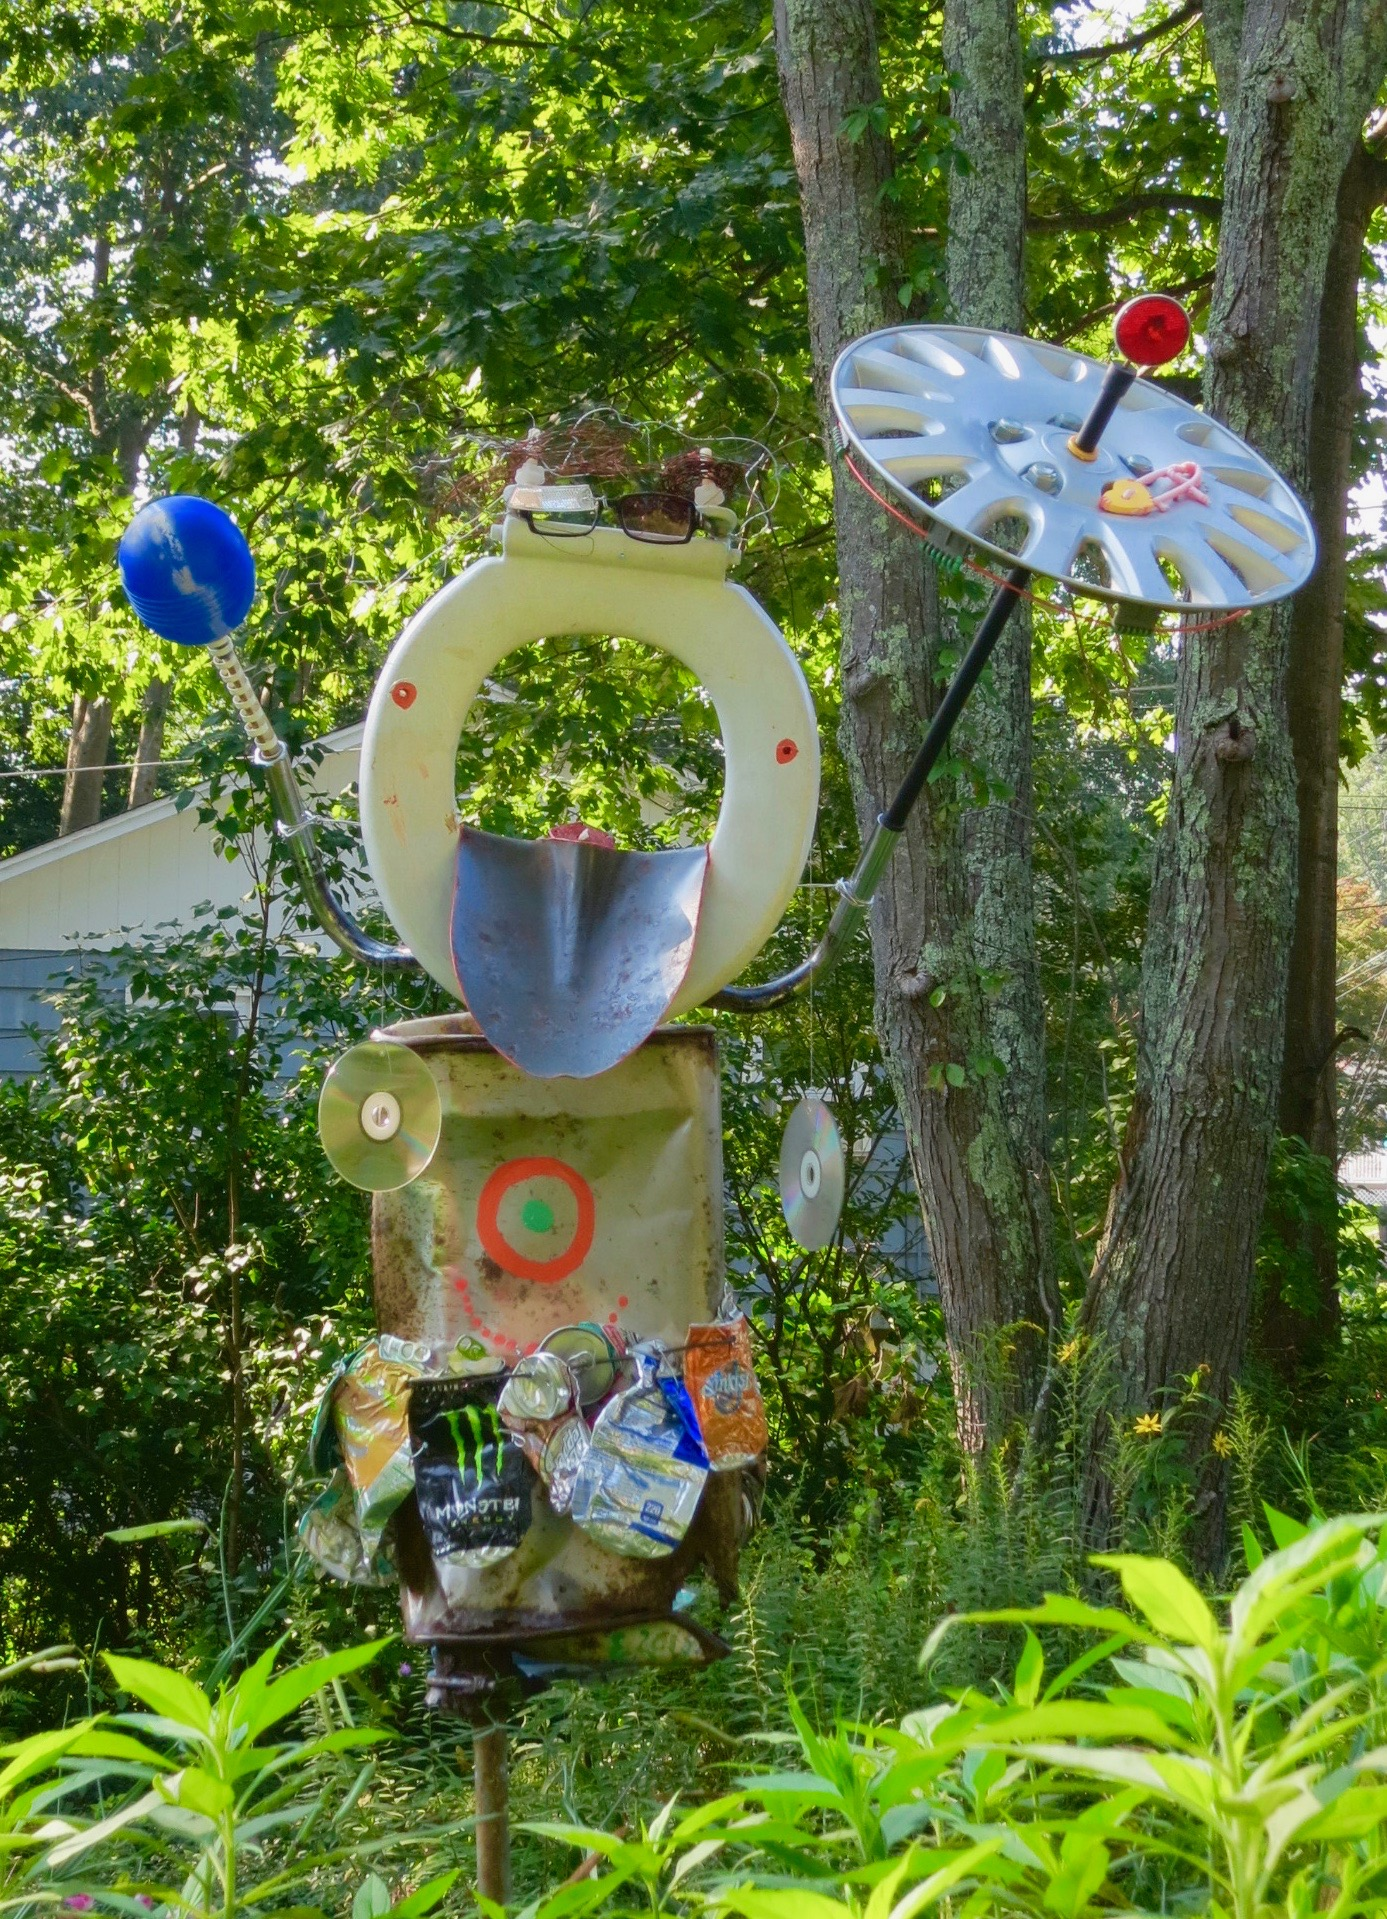 I don't mind snow, wind, sun or rain, 6 foot outdoor sculpture of found and repurposed objects